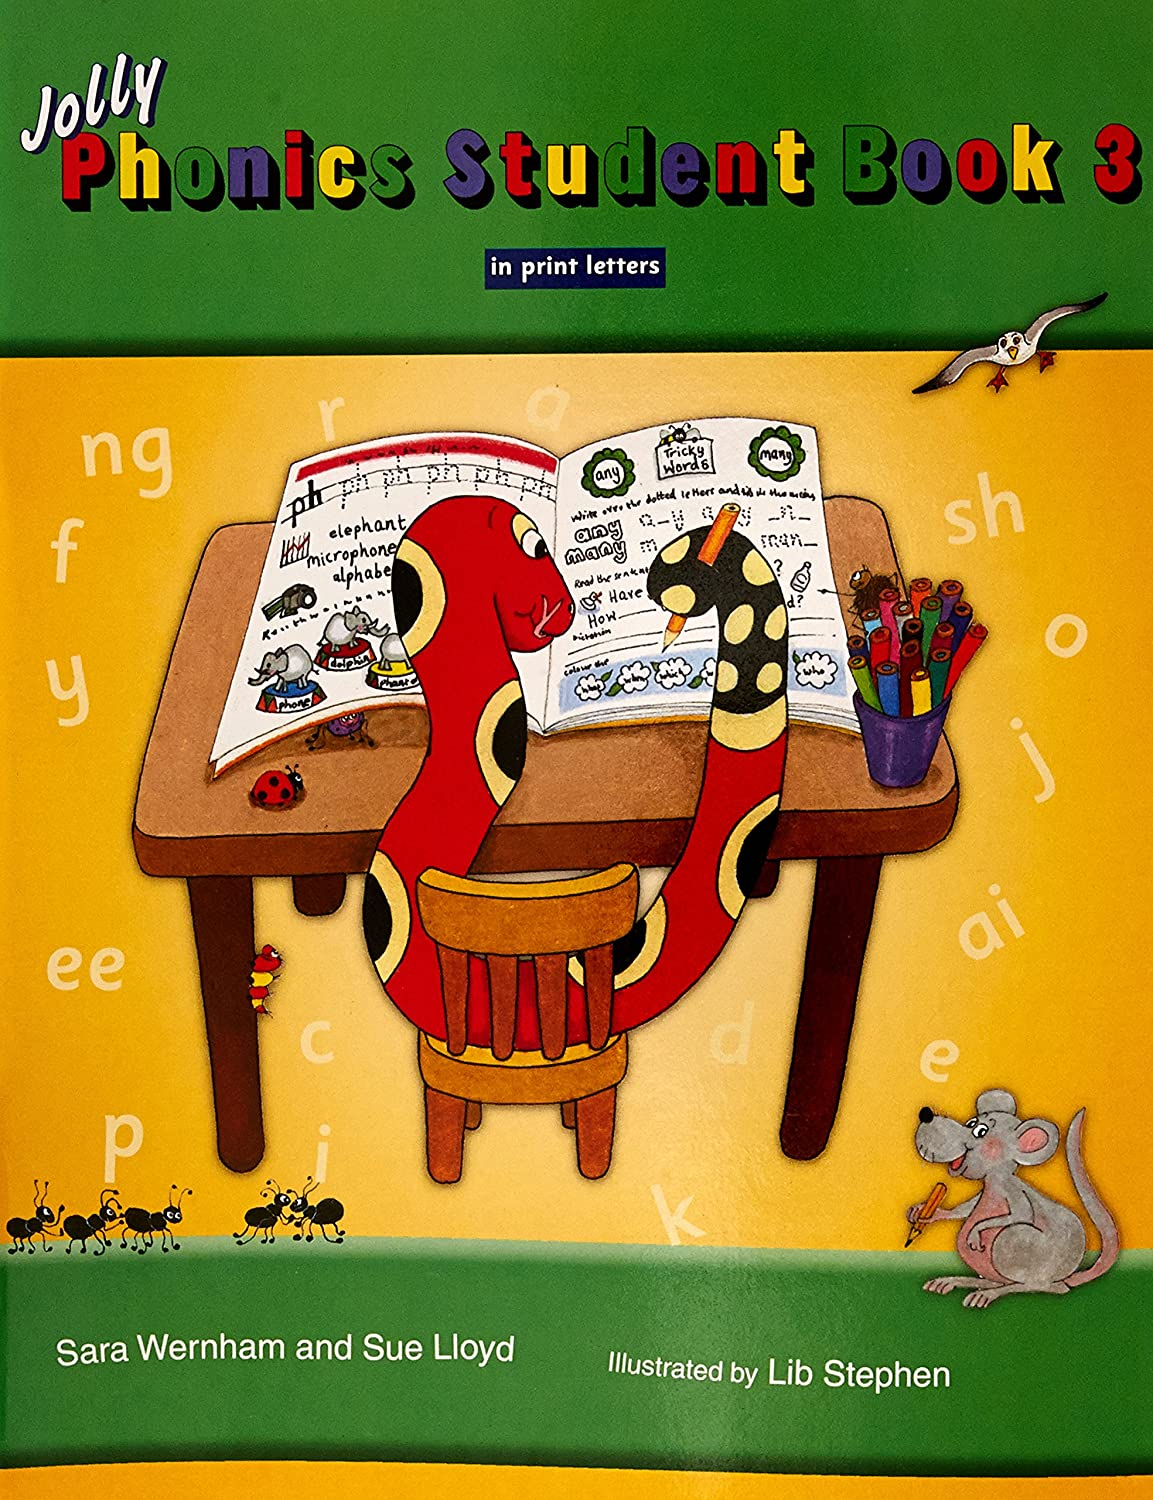 Workbooks jolly phonics workbook 1 free download : Amazon.com: Jolly Phonics Student Book 3 (Colour in Print Letters ...